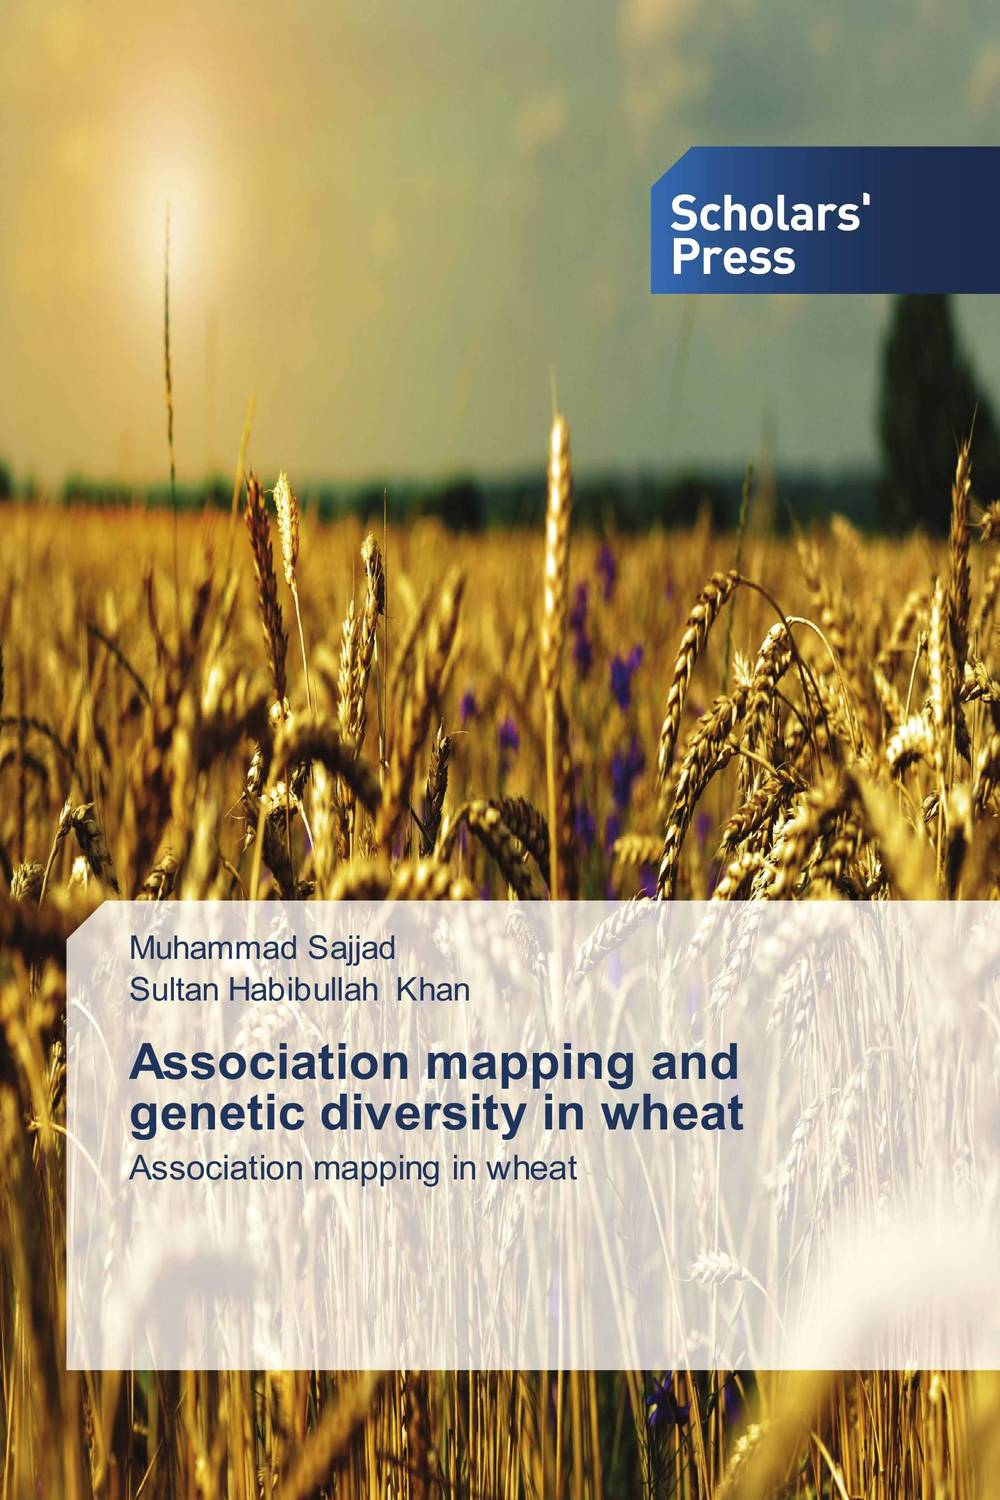 Association mapping and genetic diversity in wheat mir abid hussain dr vijeshwar verma and dr ghulam nabi qazi population genetic structure of rhizomatous picrorhiza kurrooa royle